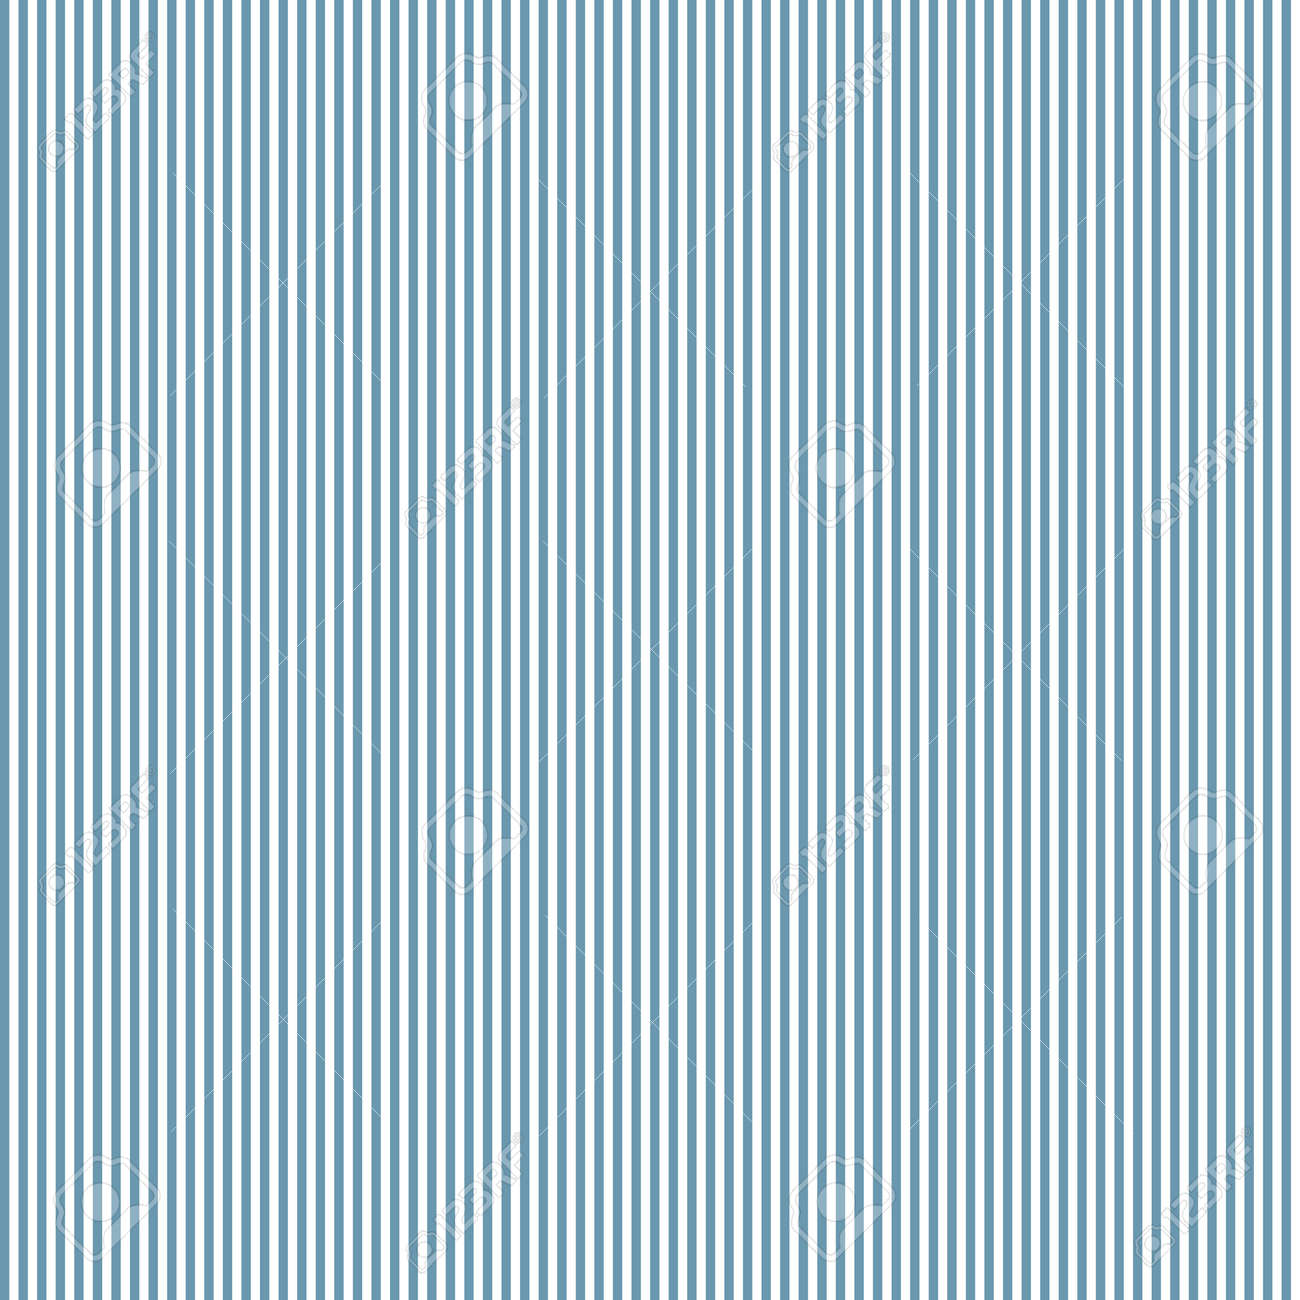 Simple stripe-extra-fine. Seamless pattern. Material for wallpaper and wrapping paper. Textile design. - 169494553